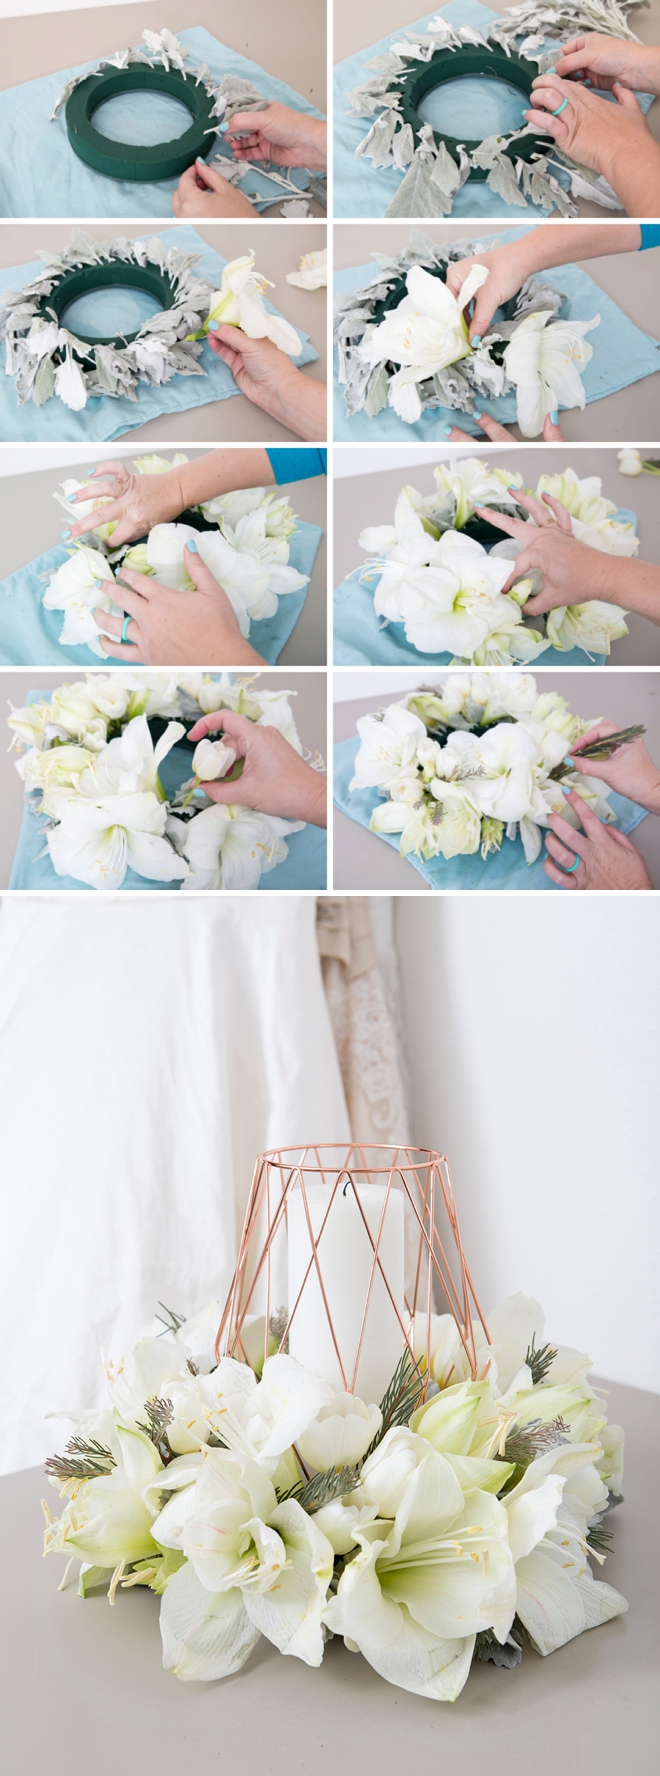 These DIY table wreath centerpieces are gorgeous!